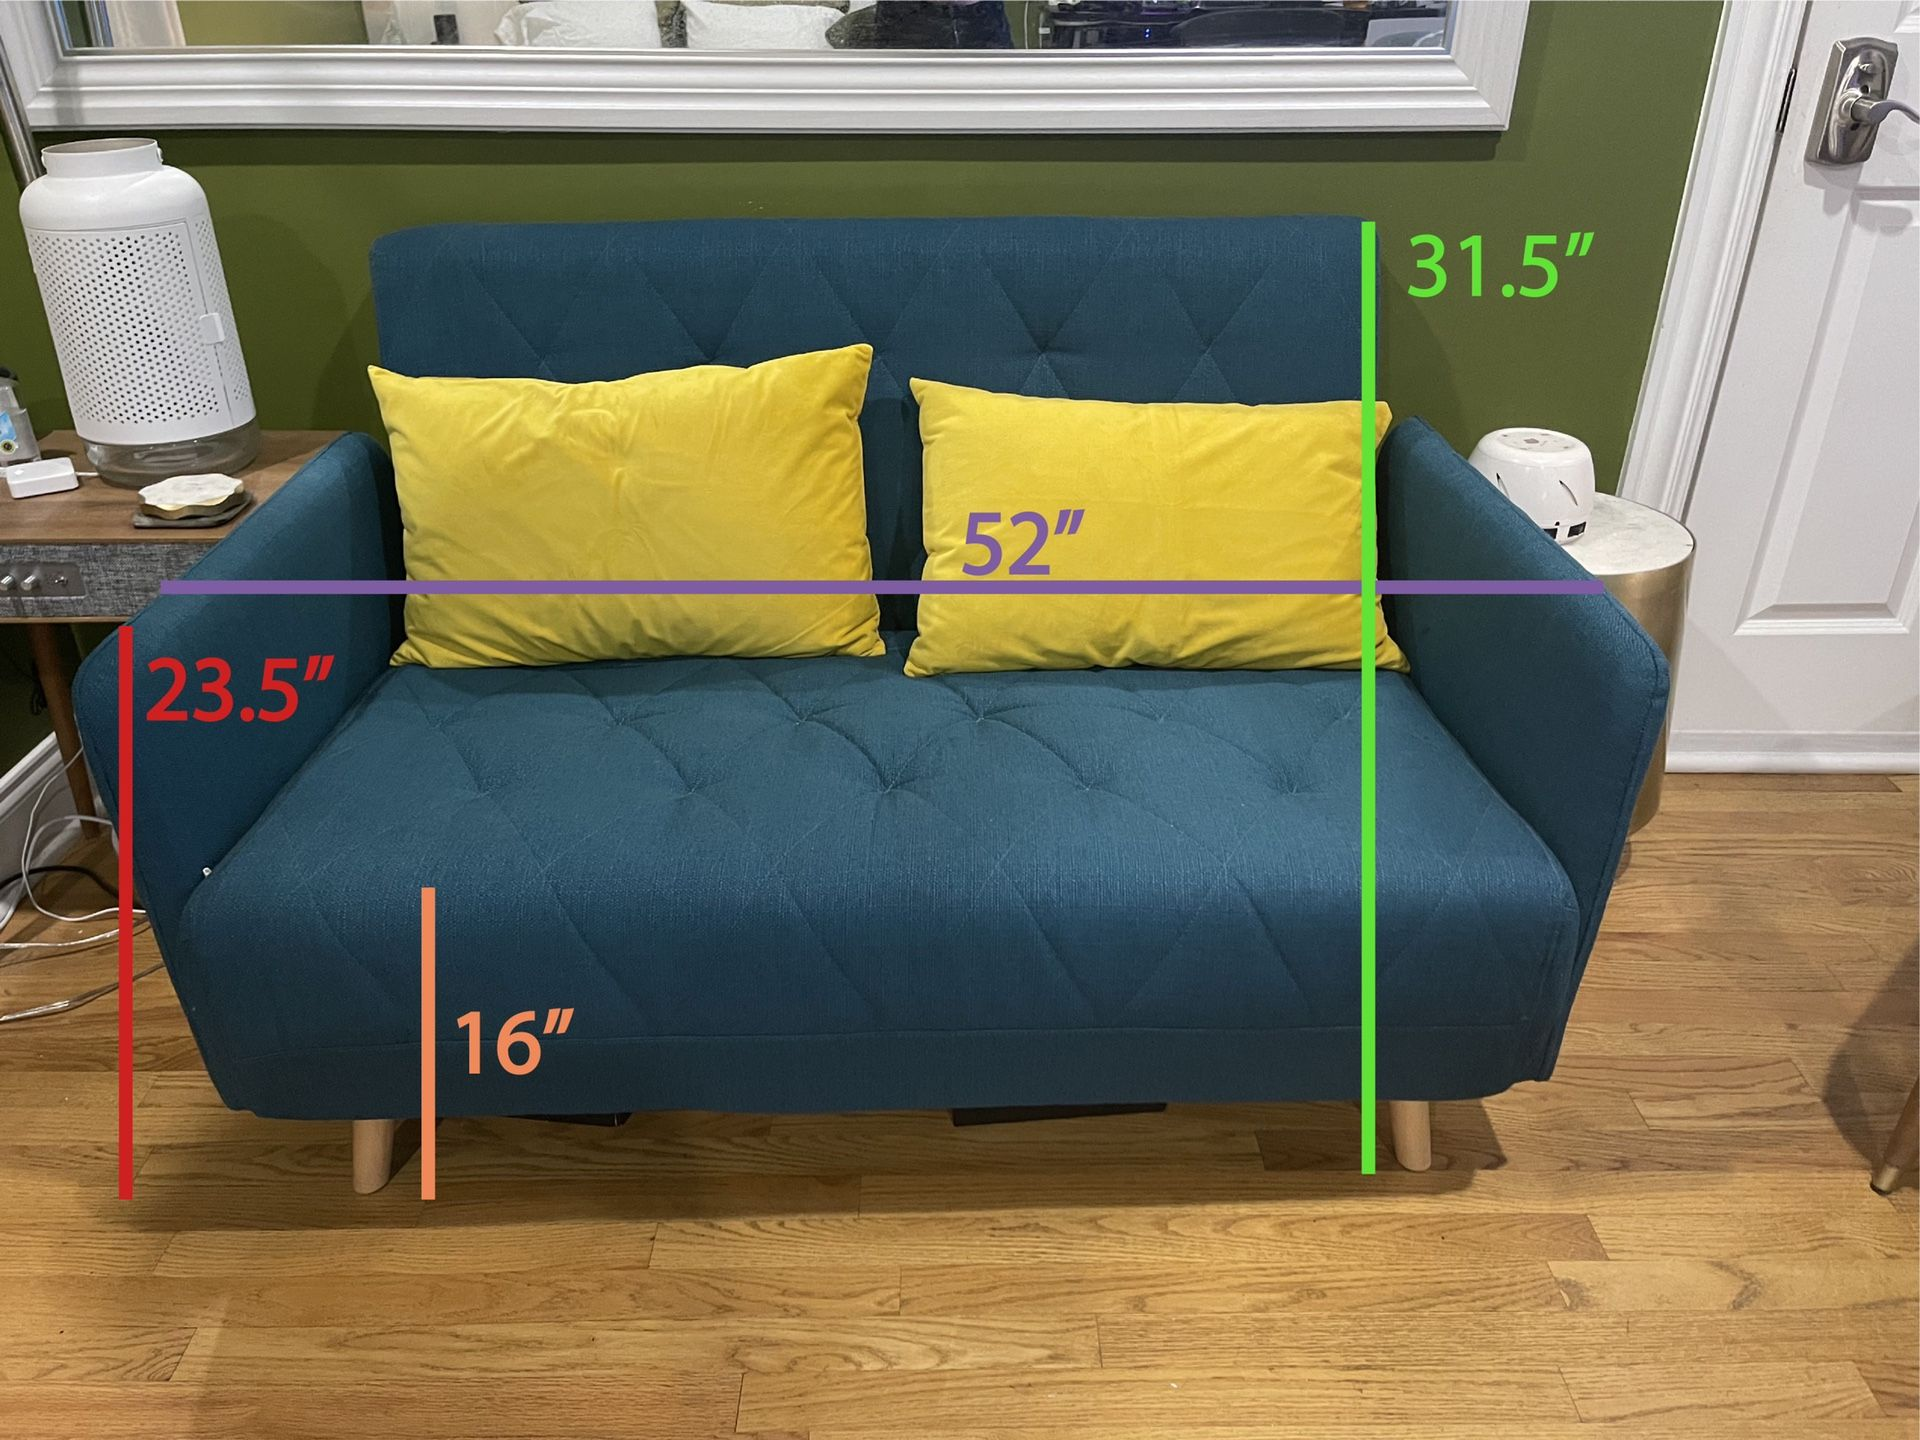 Convertible Love Seat Folds Out To Twin Bed